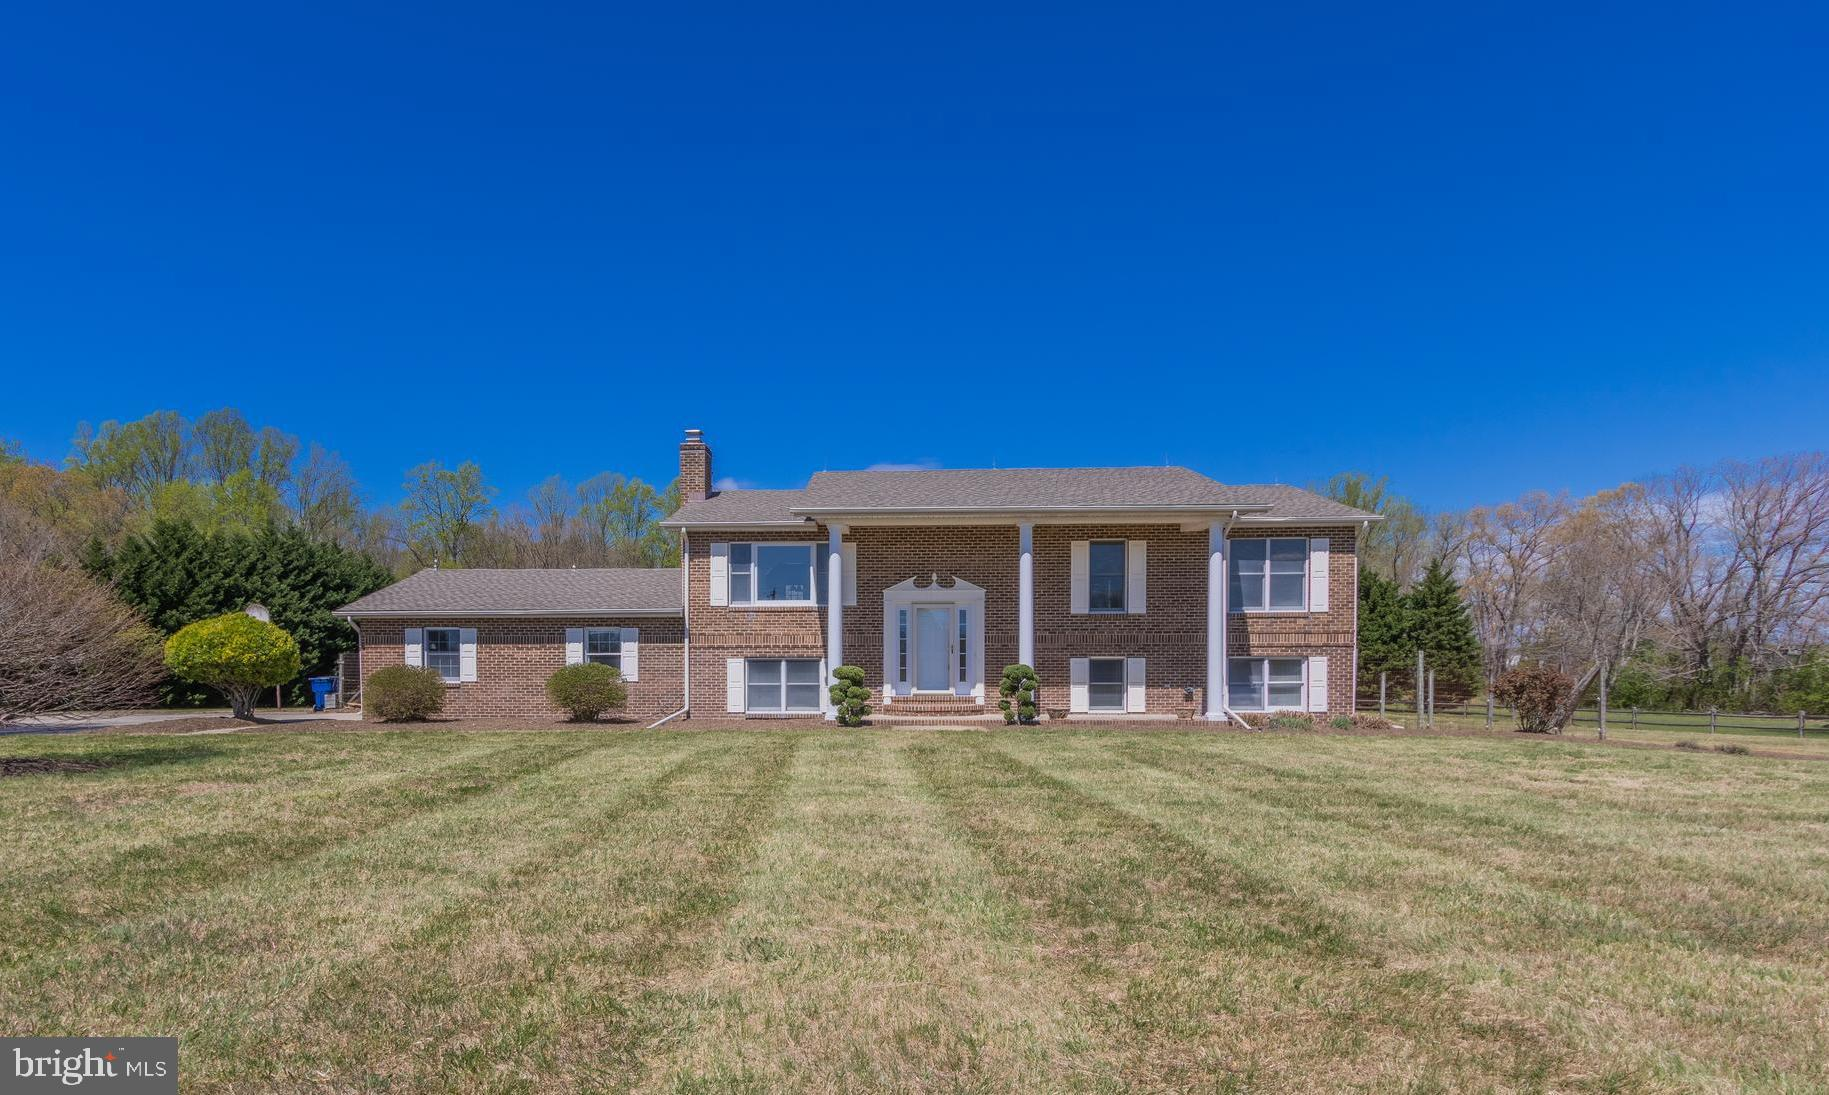 Beautiful brick front home on 4 acres cleared and level for your recreational enjoyment! 4 bedrooms